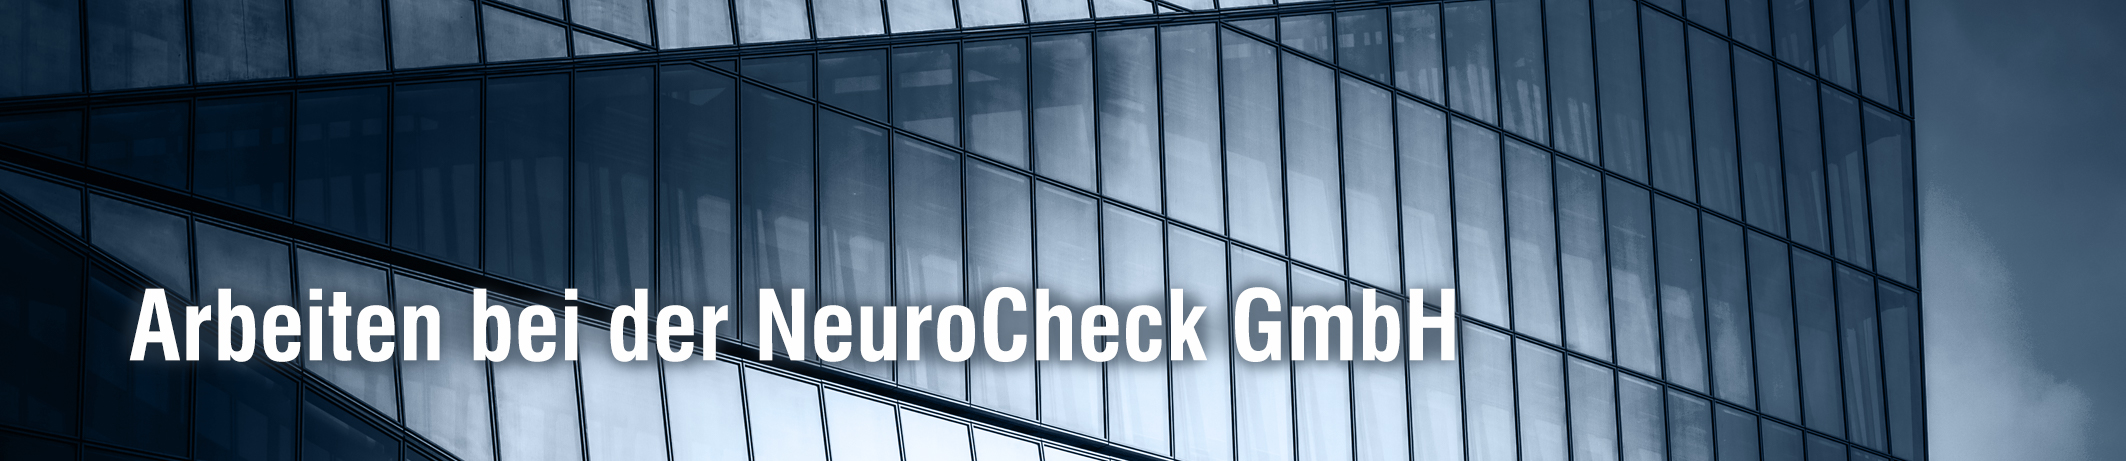 NeuroCheck Karriere (Foto © designed by Fanjianhua - Freepik.com)